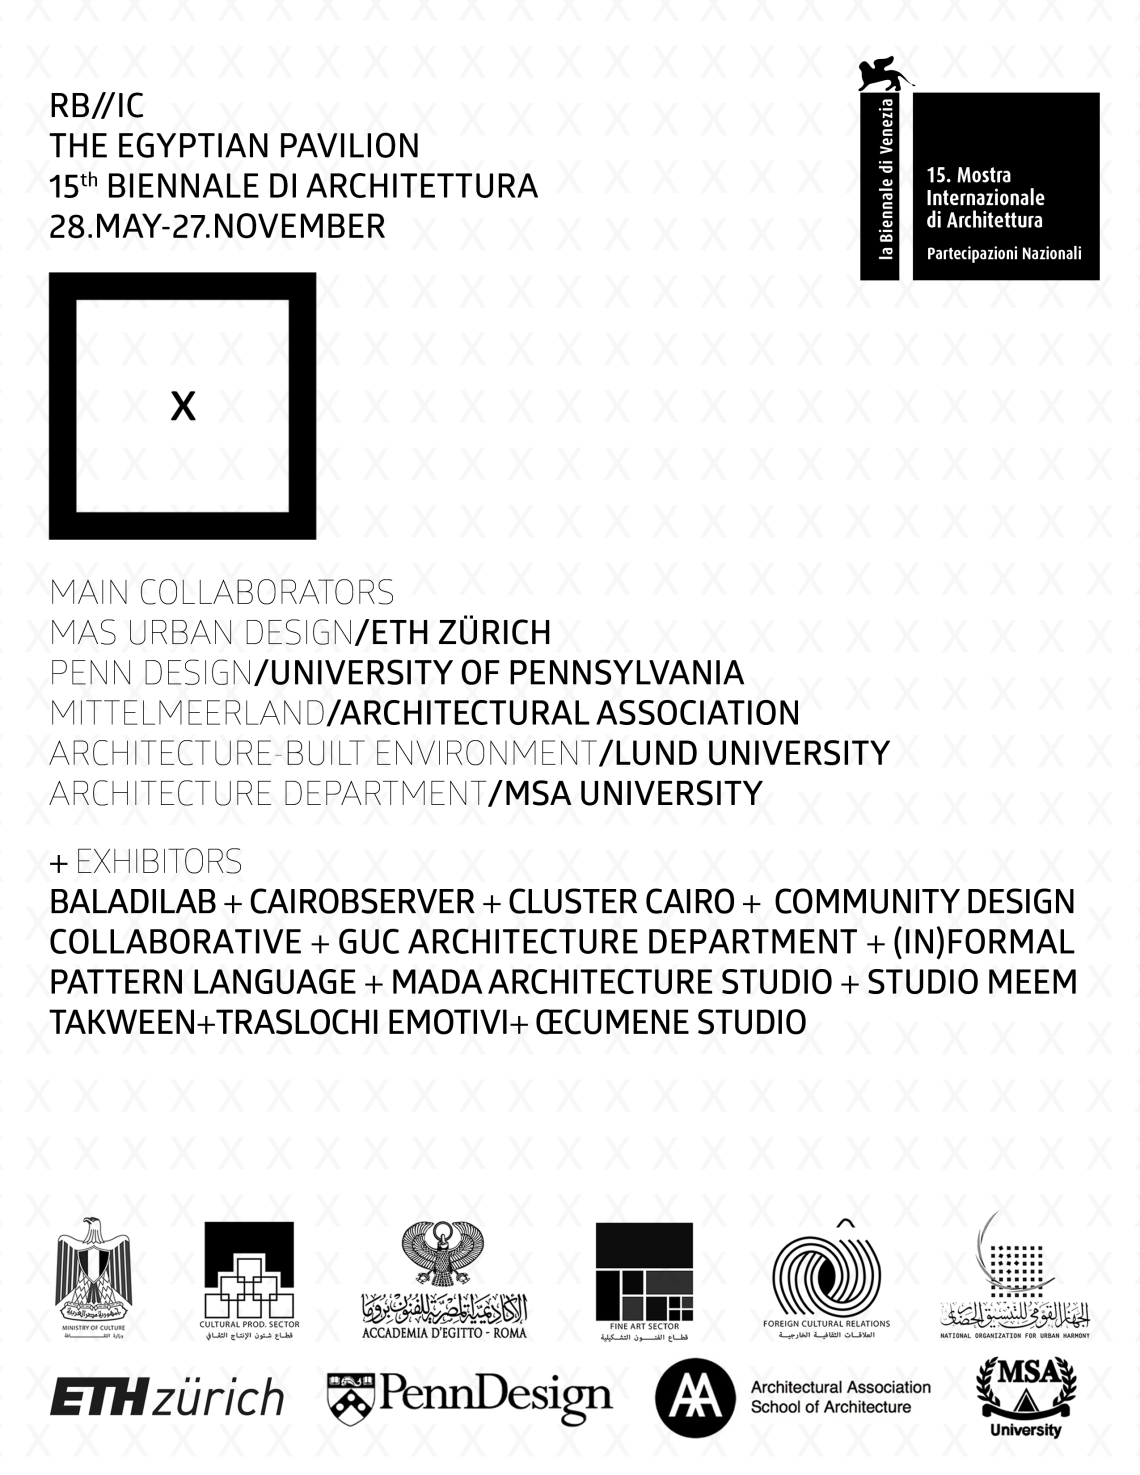 Egyptian Pavilion 15th Biennale of Architecture